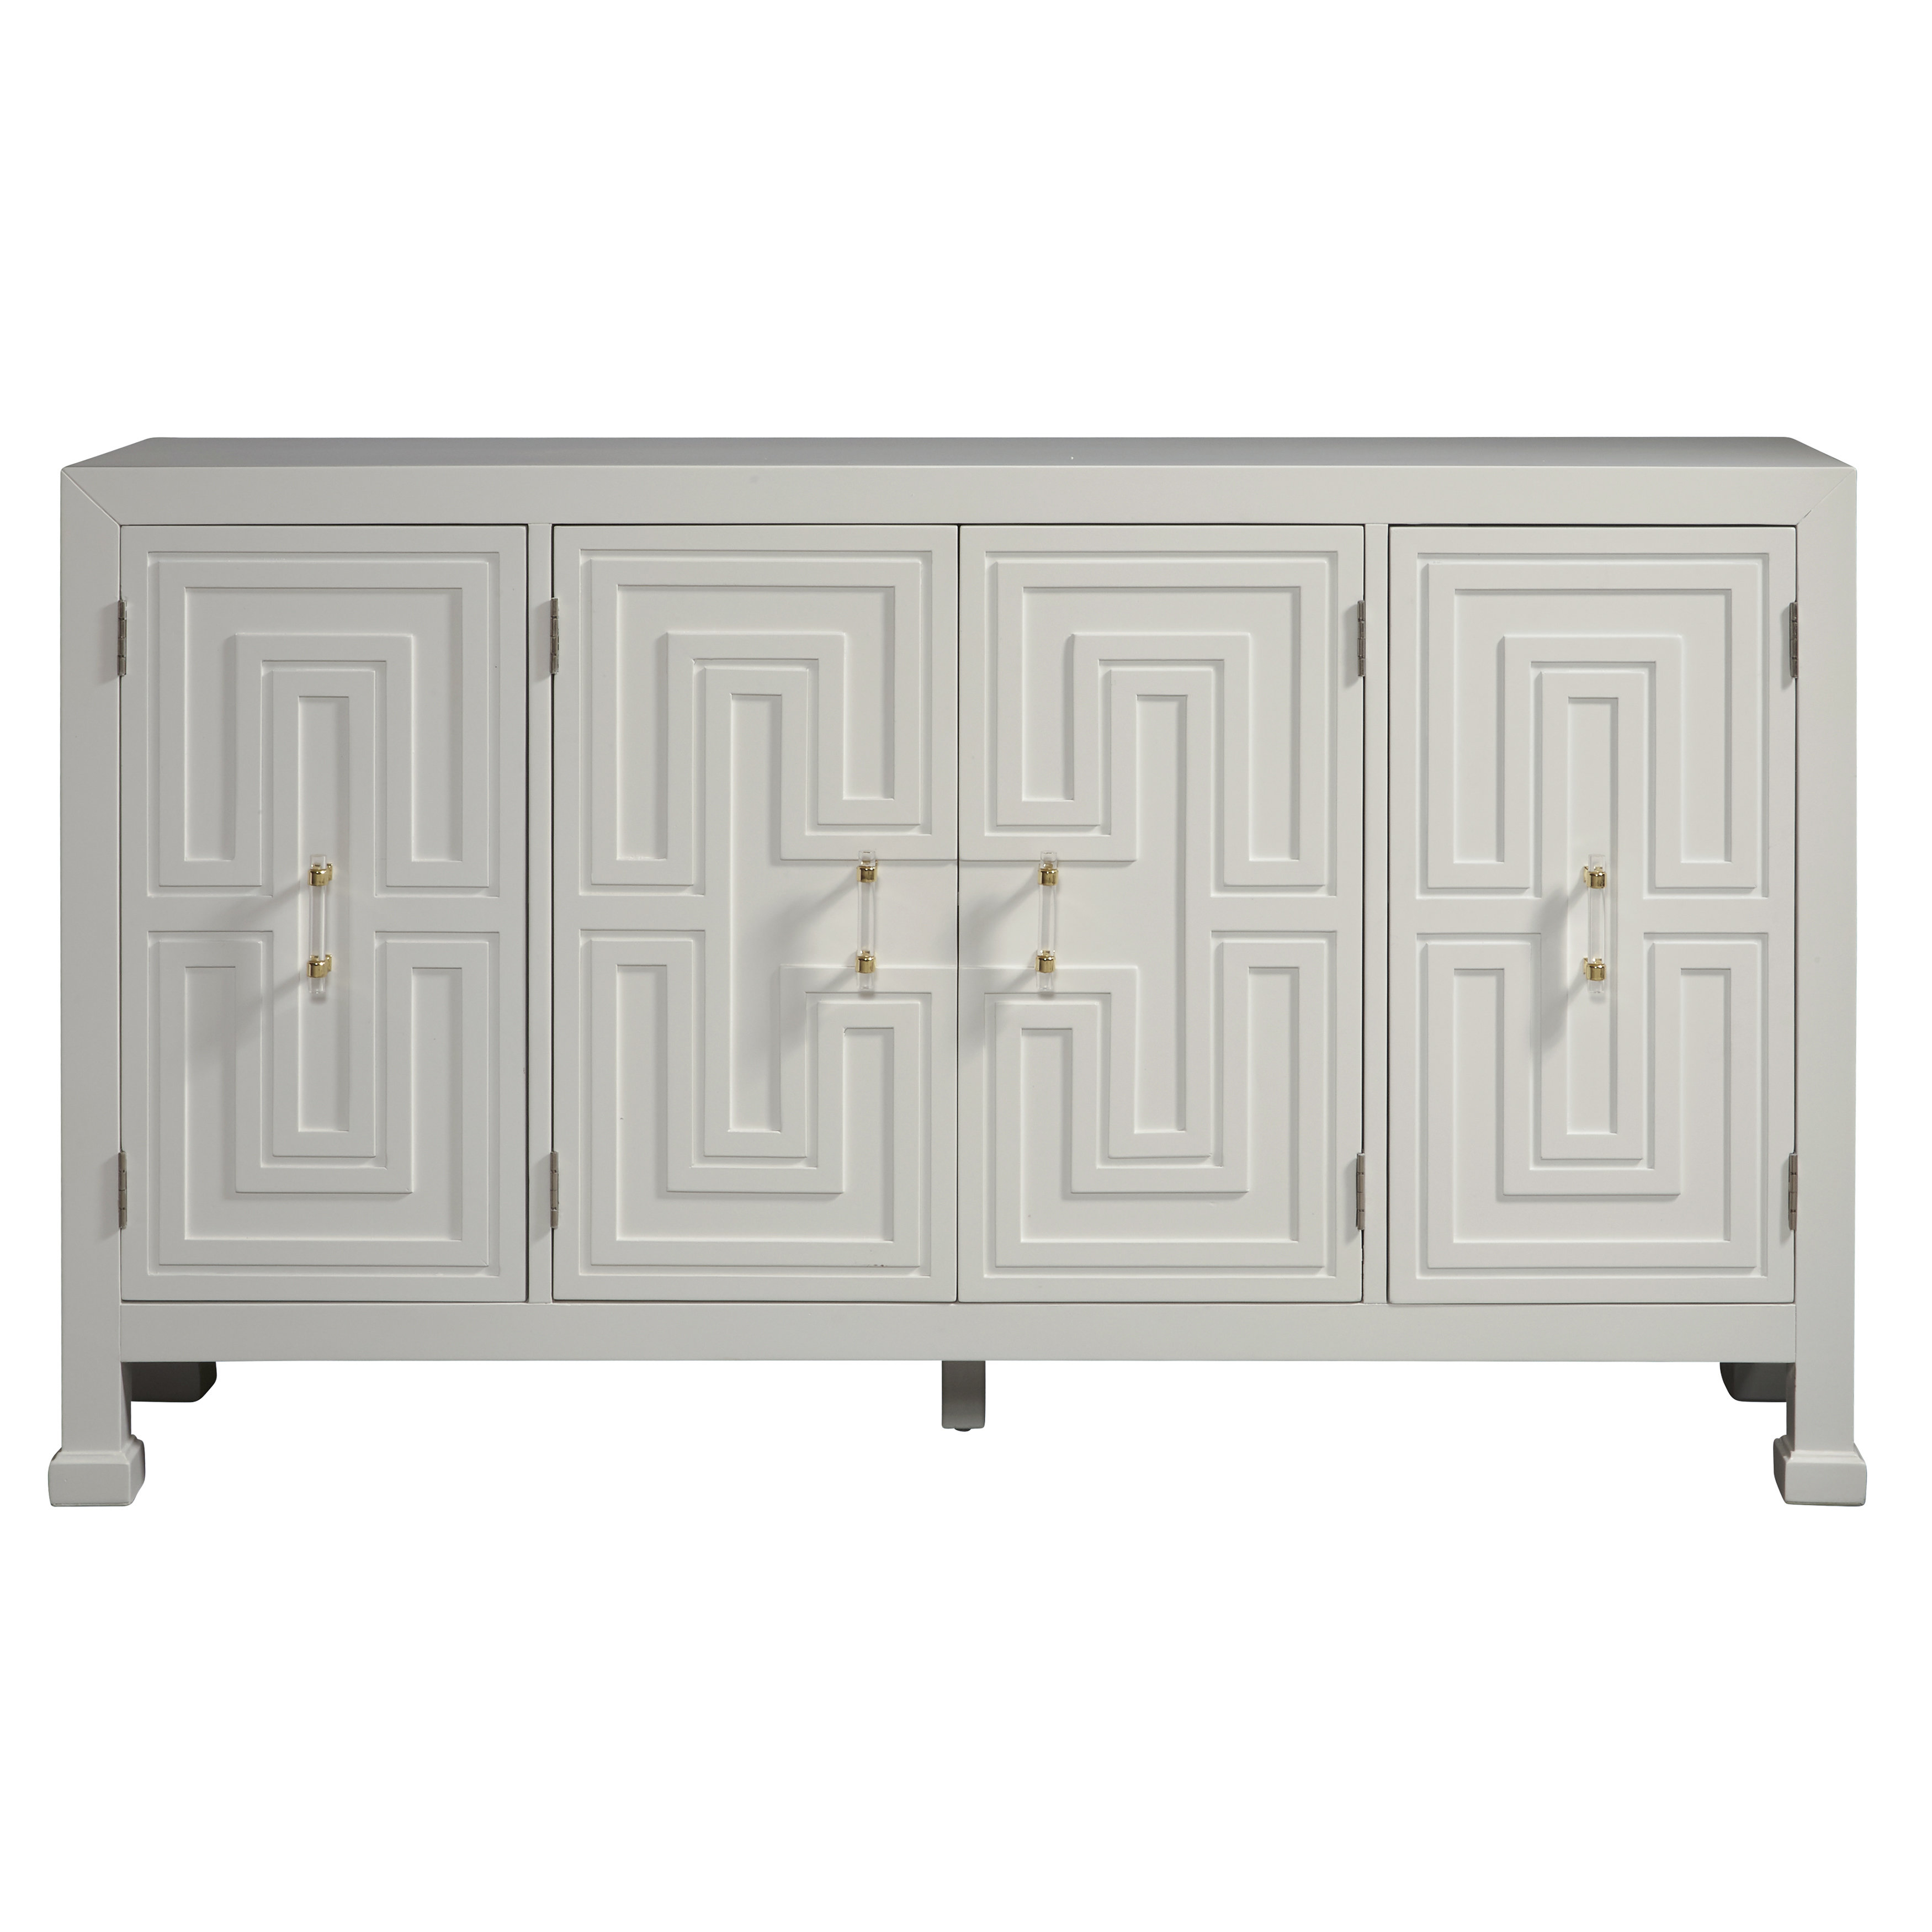 Lainey Credenza With Regard To Most Up To Date Lainey Credenzas (#14 of 20)